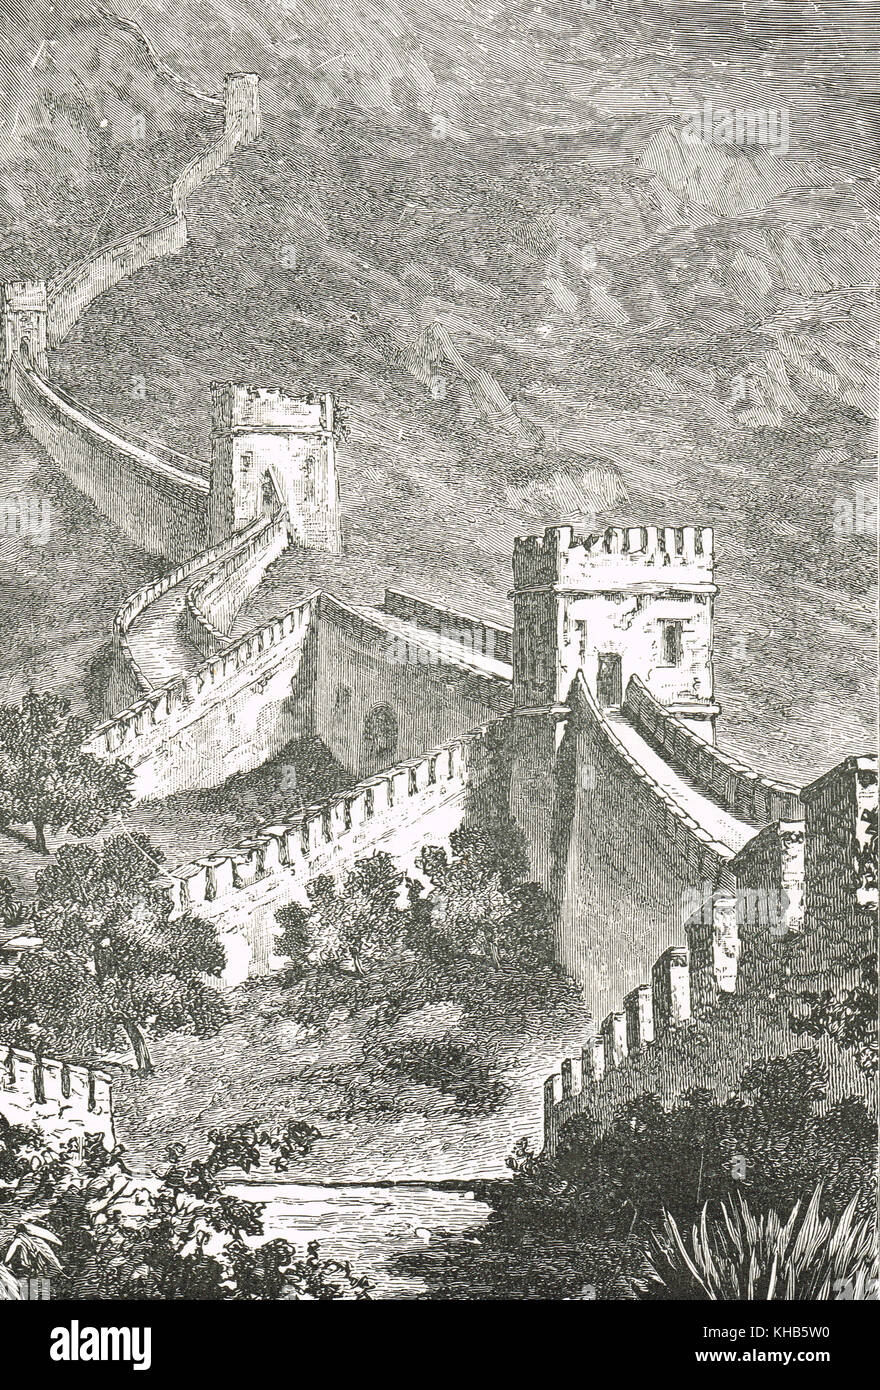 The great wall of China, 19th century view - Stock Image